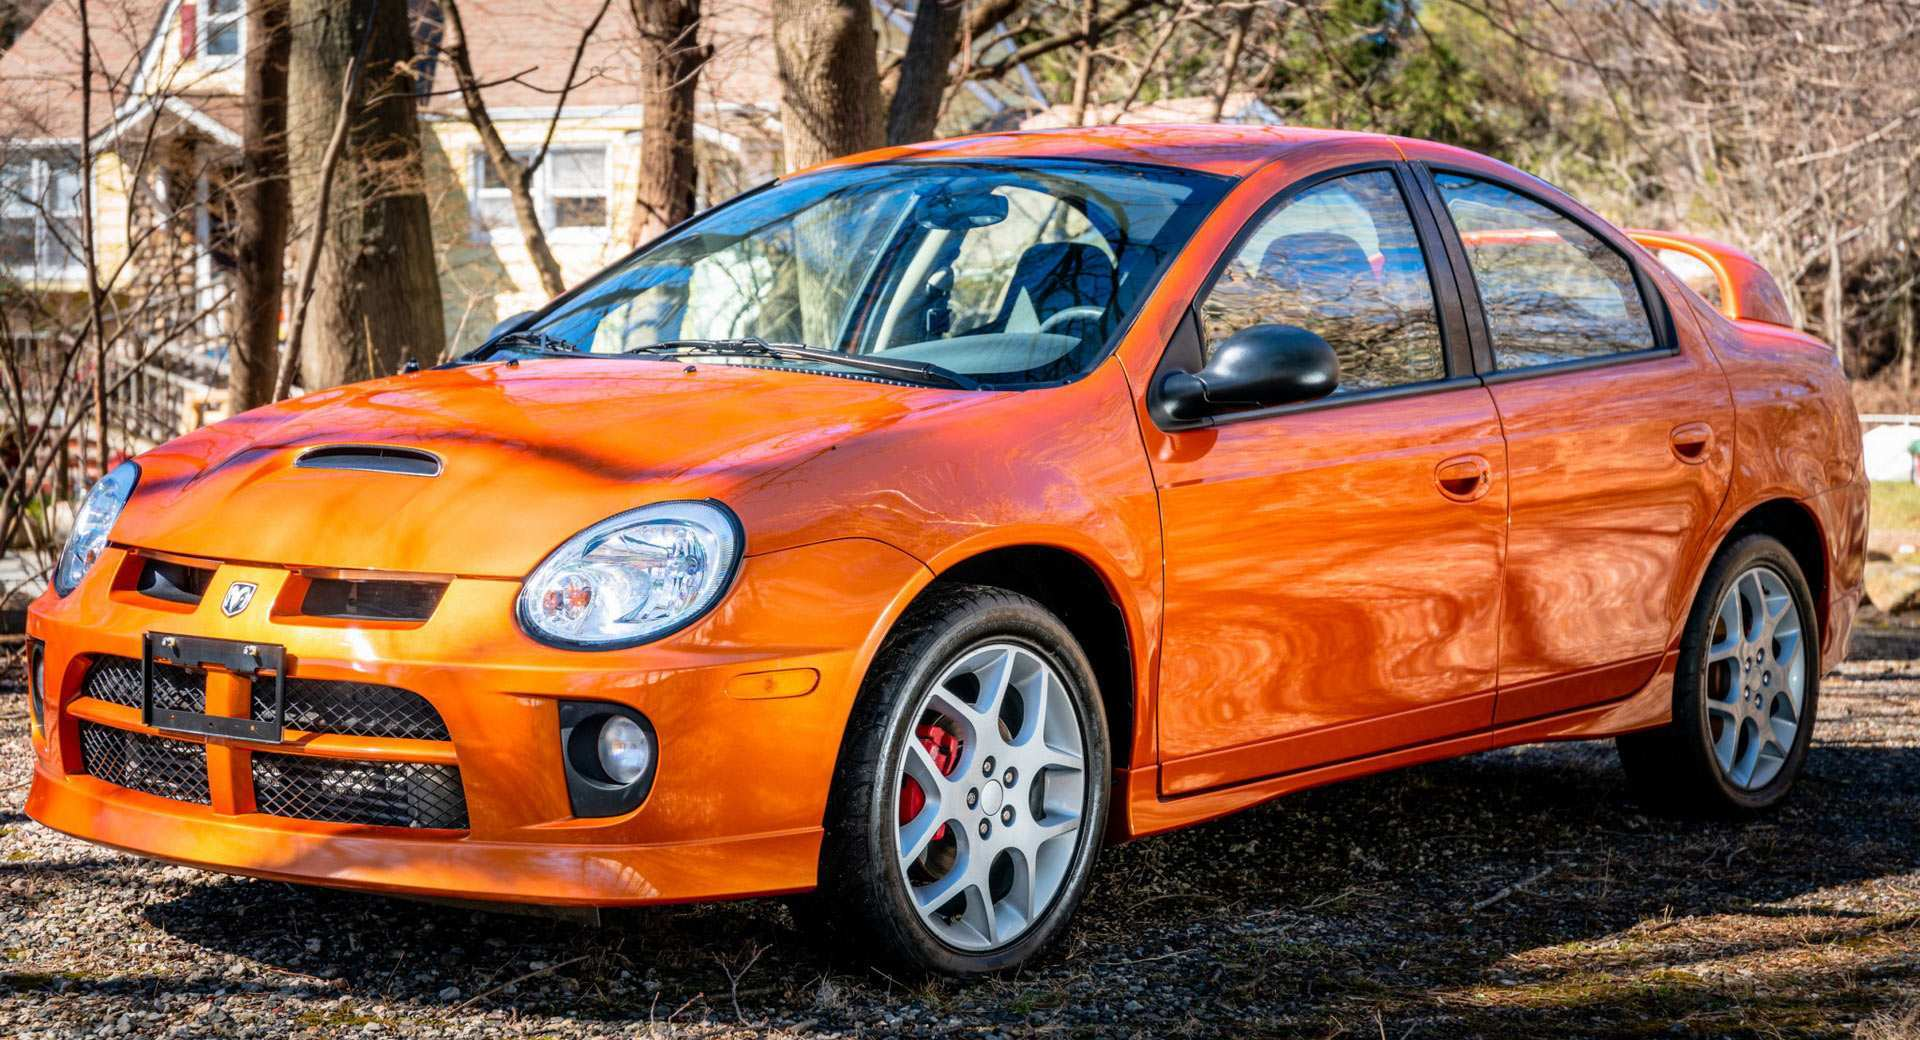 35 All New Dodge Neon 2020 Picture by Dodge Neon 2020